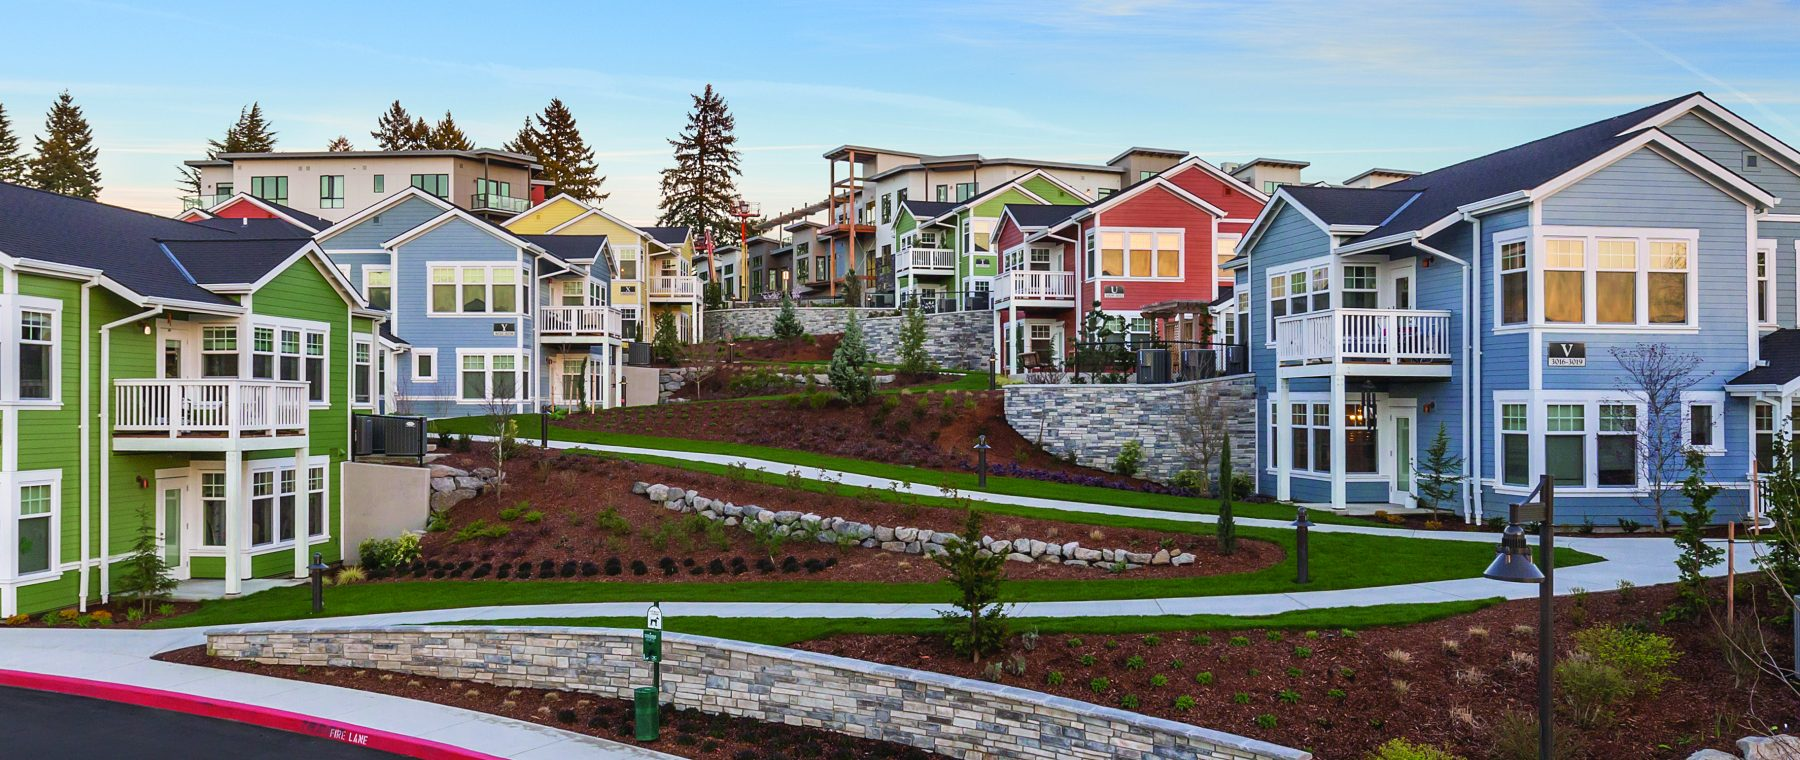 Simple Designs, Natural Light And Clear Views Of The Majestic Outdoors  Dominated This Yearu0027s Senior Living By Design Winners. Communities  Increasingly Are ...